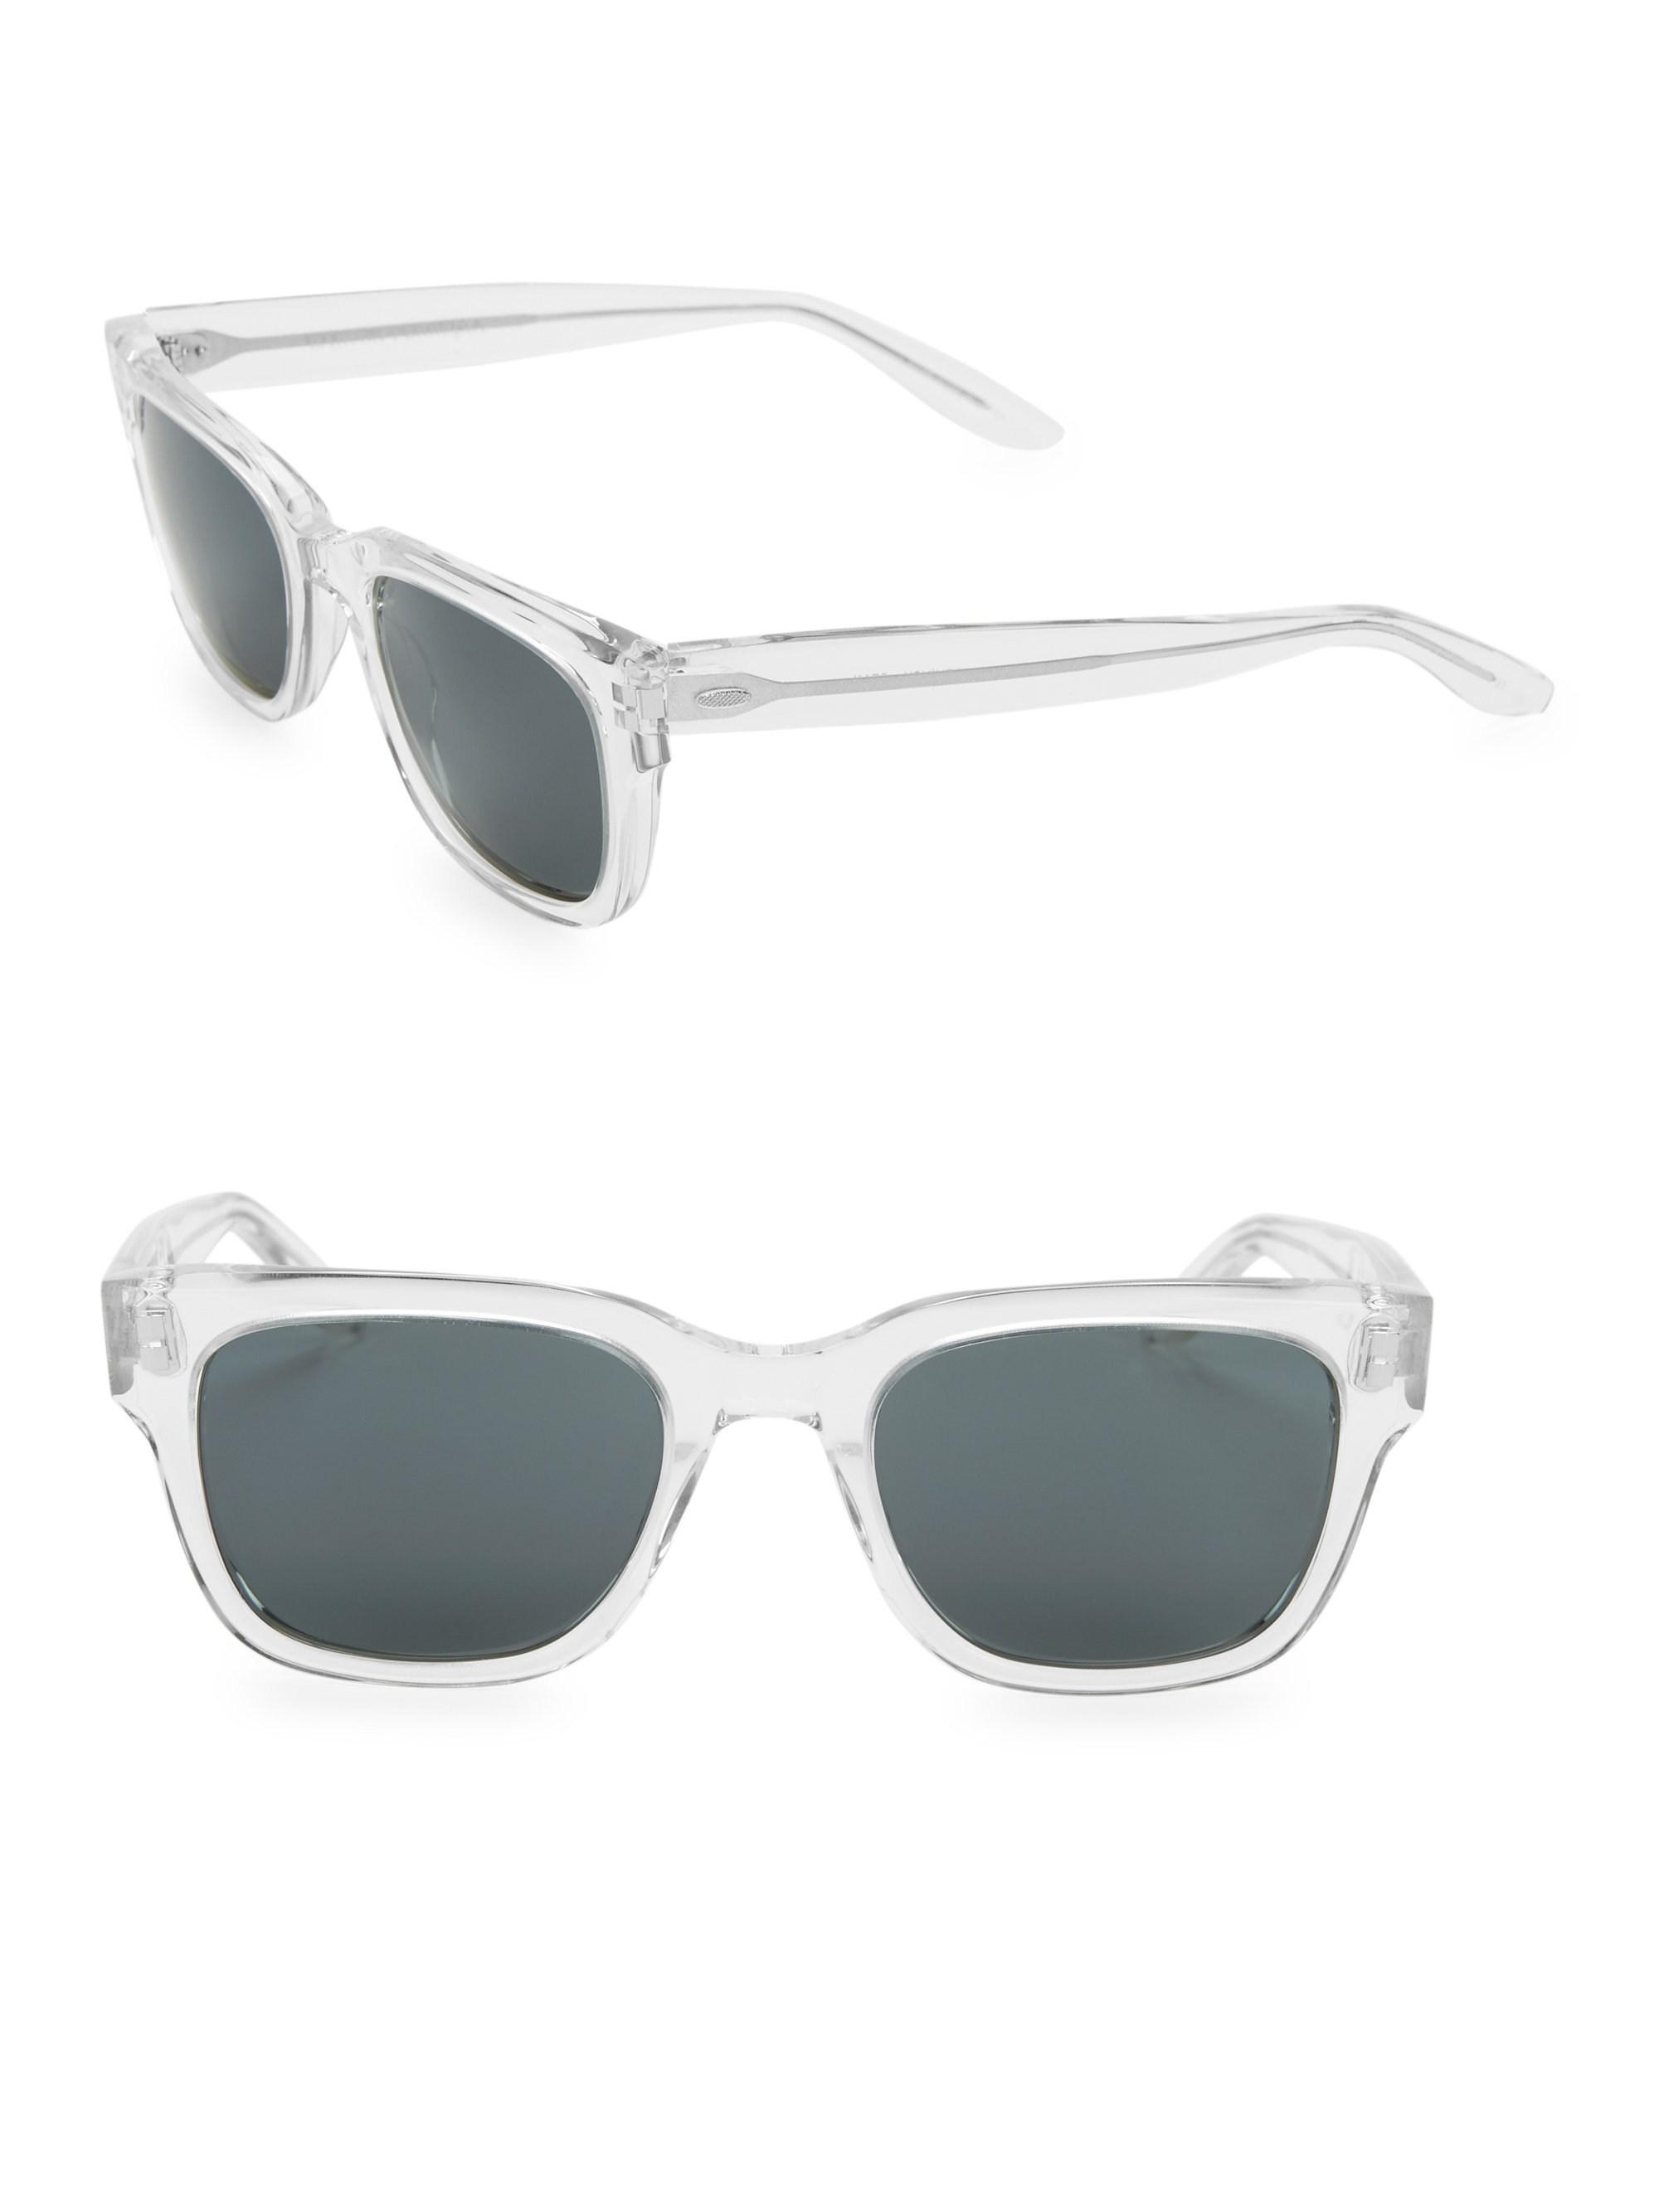 d0902596ddbb Lyst - Barton Perreira Stax Crystal 50mm Square Sunglasses for Men